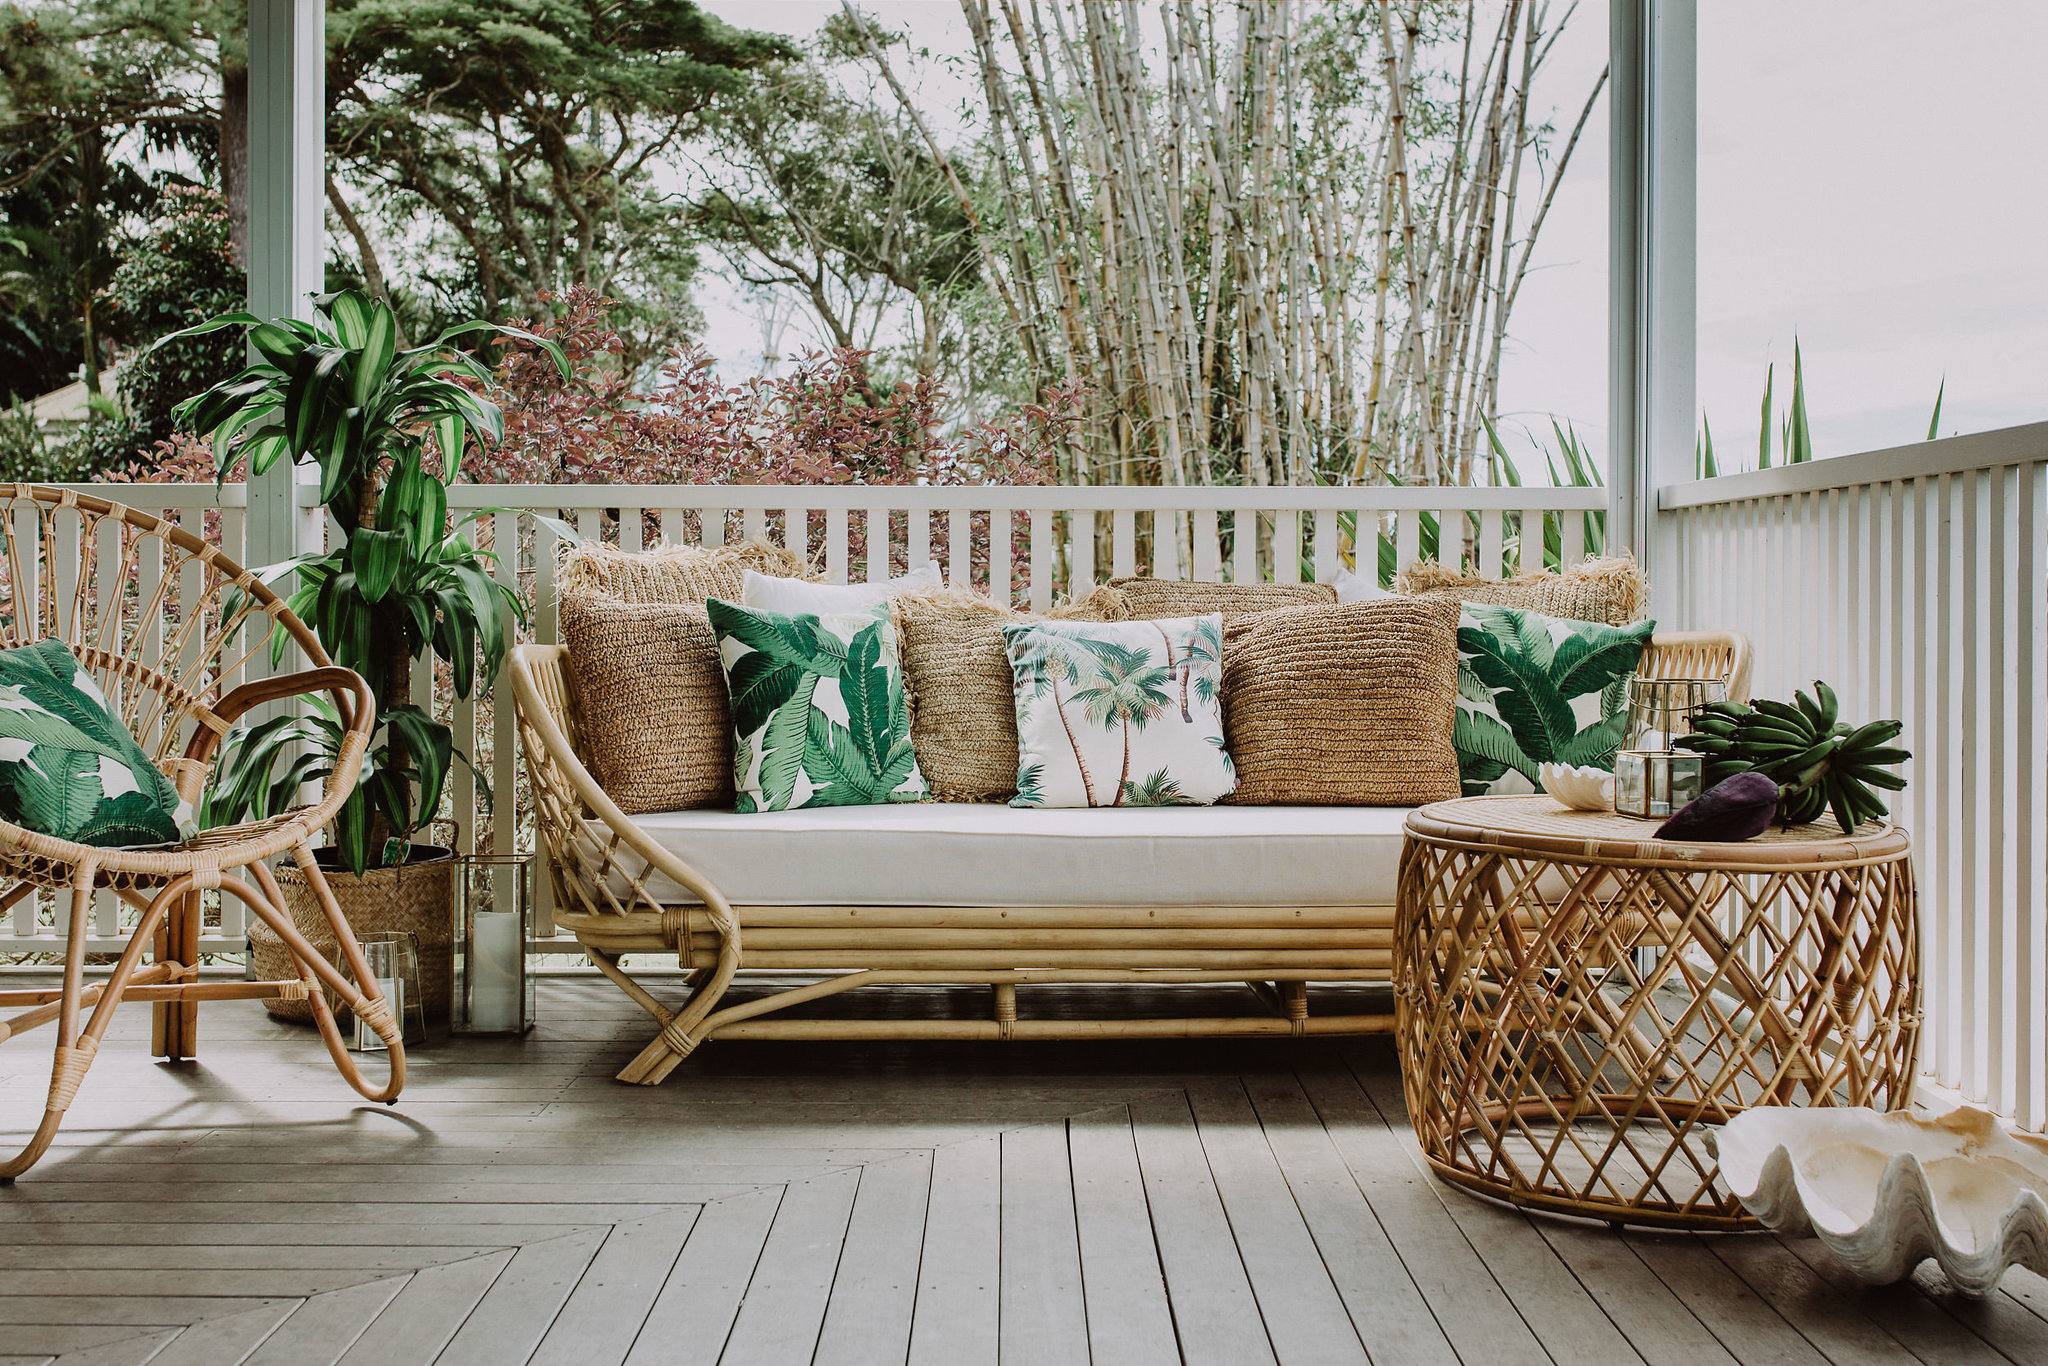 Rattan Day Bed | $170 each | Qty 3